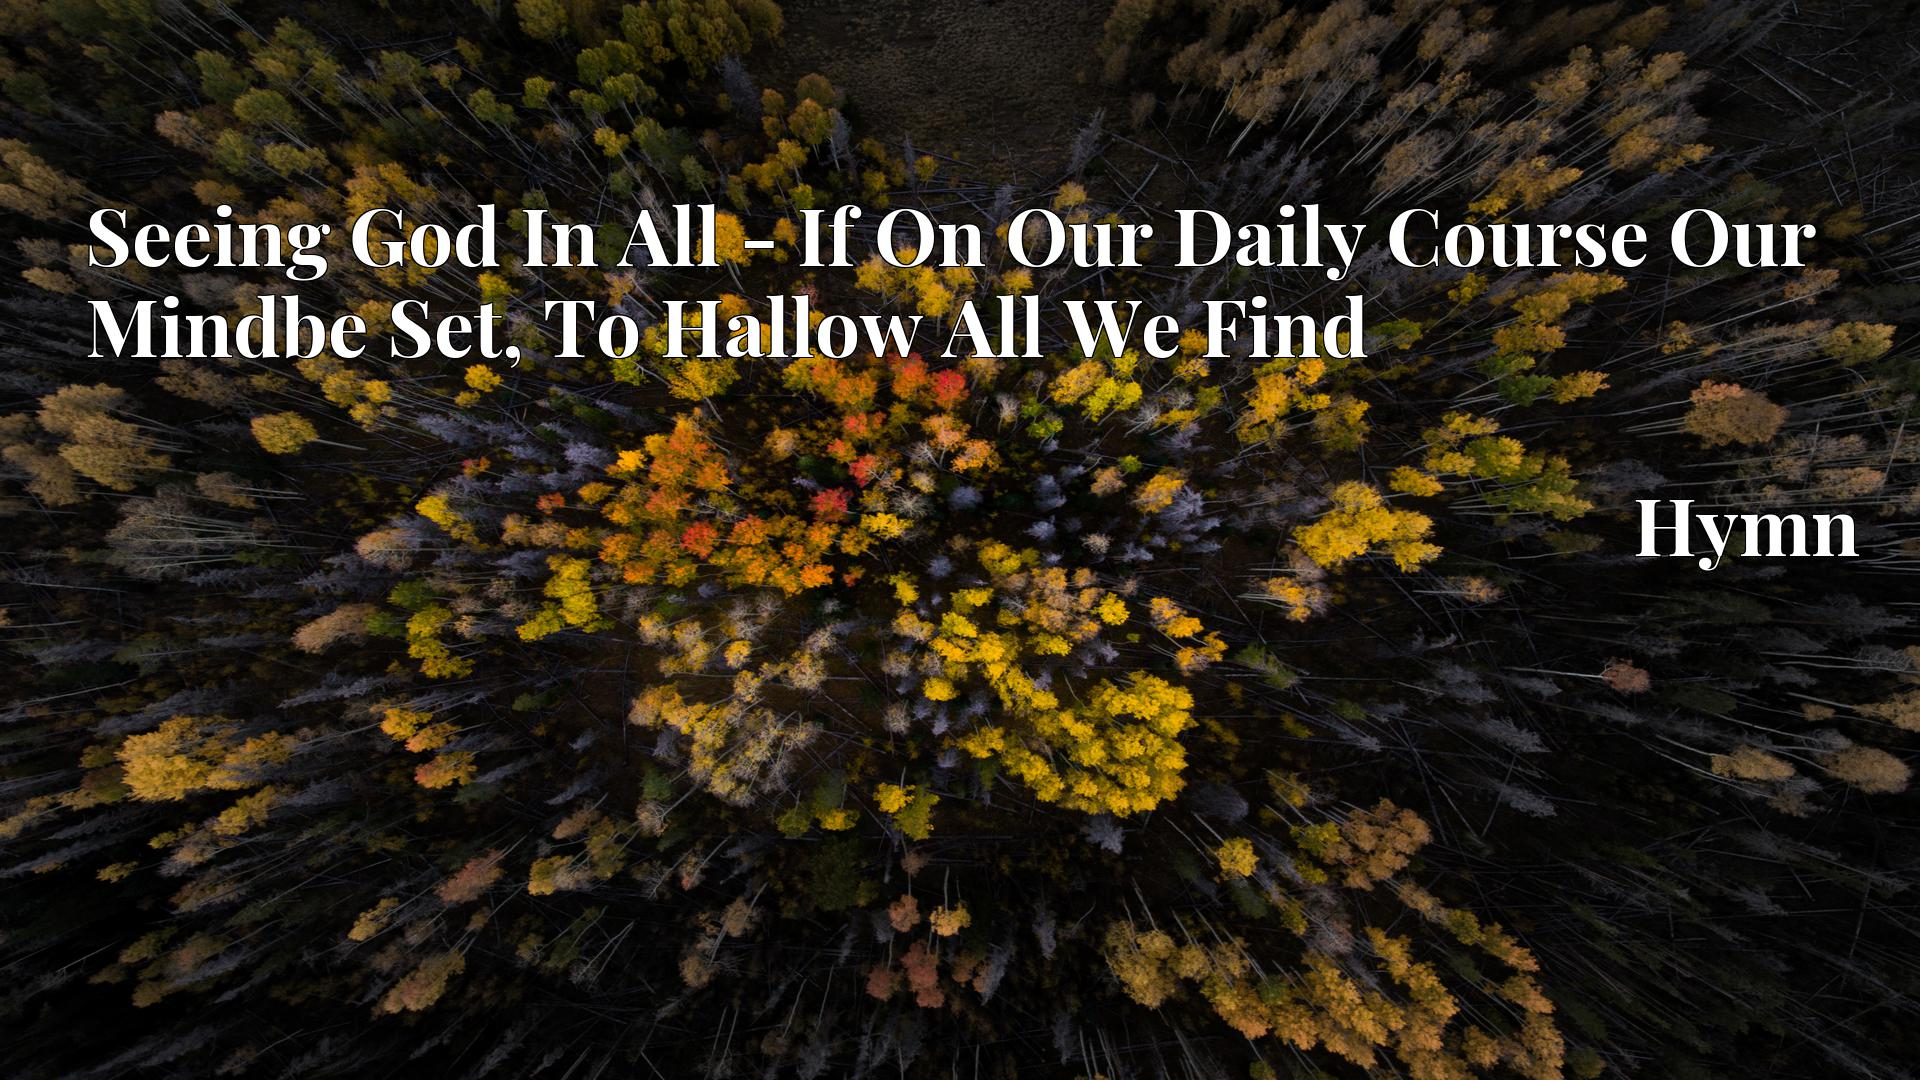 Seeing God In All - If On Our Daily Course Our Mindbe Set, To Hallow All We Find - Hymn